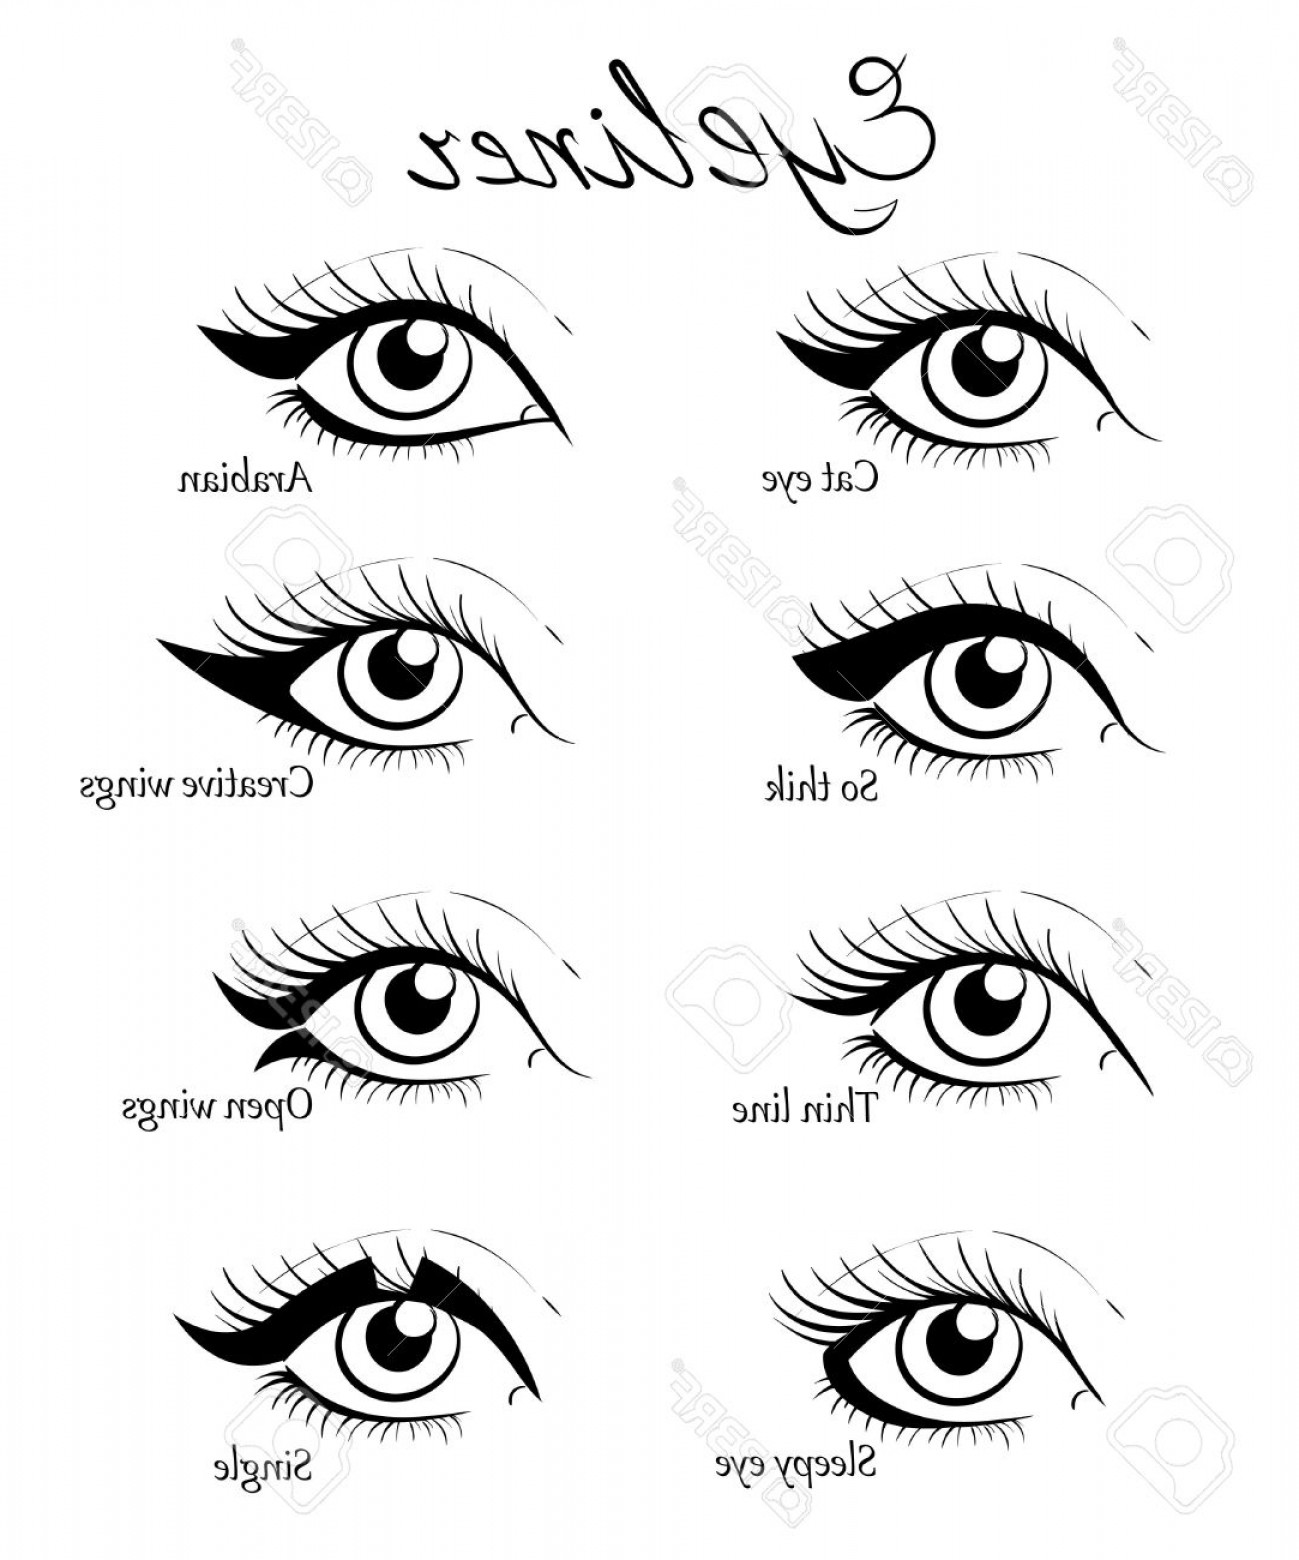 Vector Illustration Eyes Makeup: Photostock Vector Types Of Eye Makeup Cat Eyeliner Tutorial Hand Drawn Illustration Of Eyebrow Line Make Up Sketches I